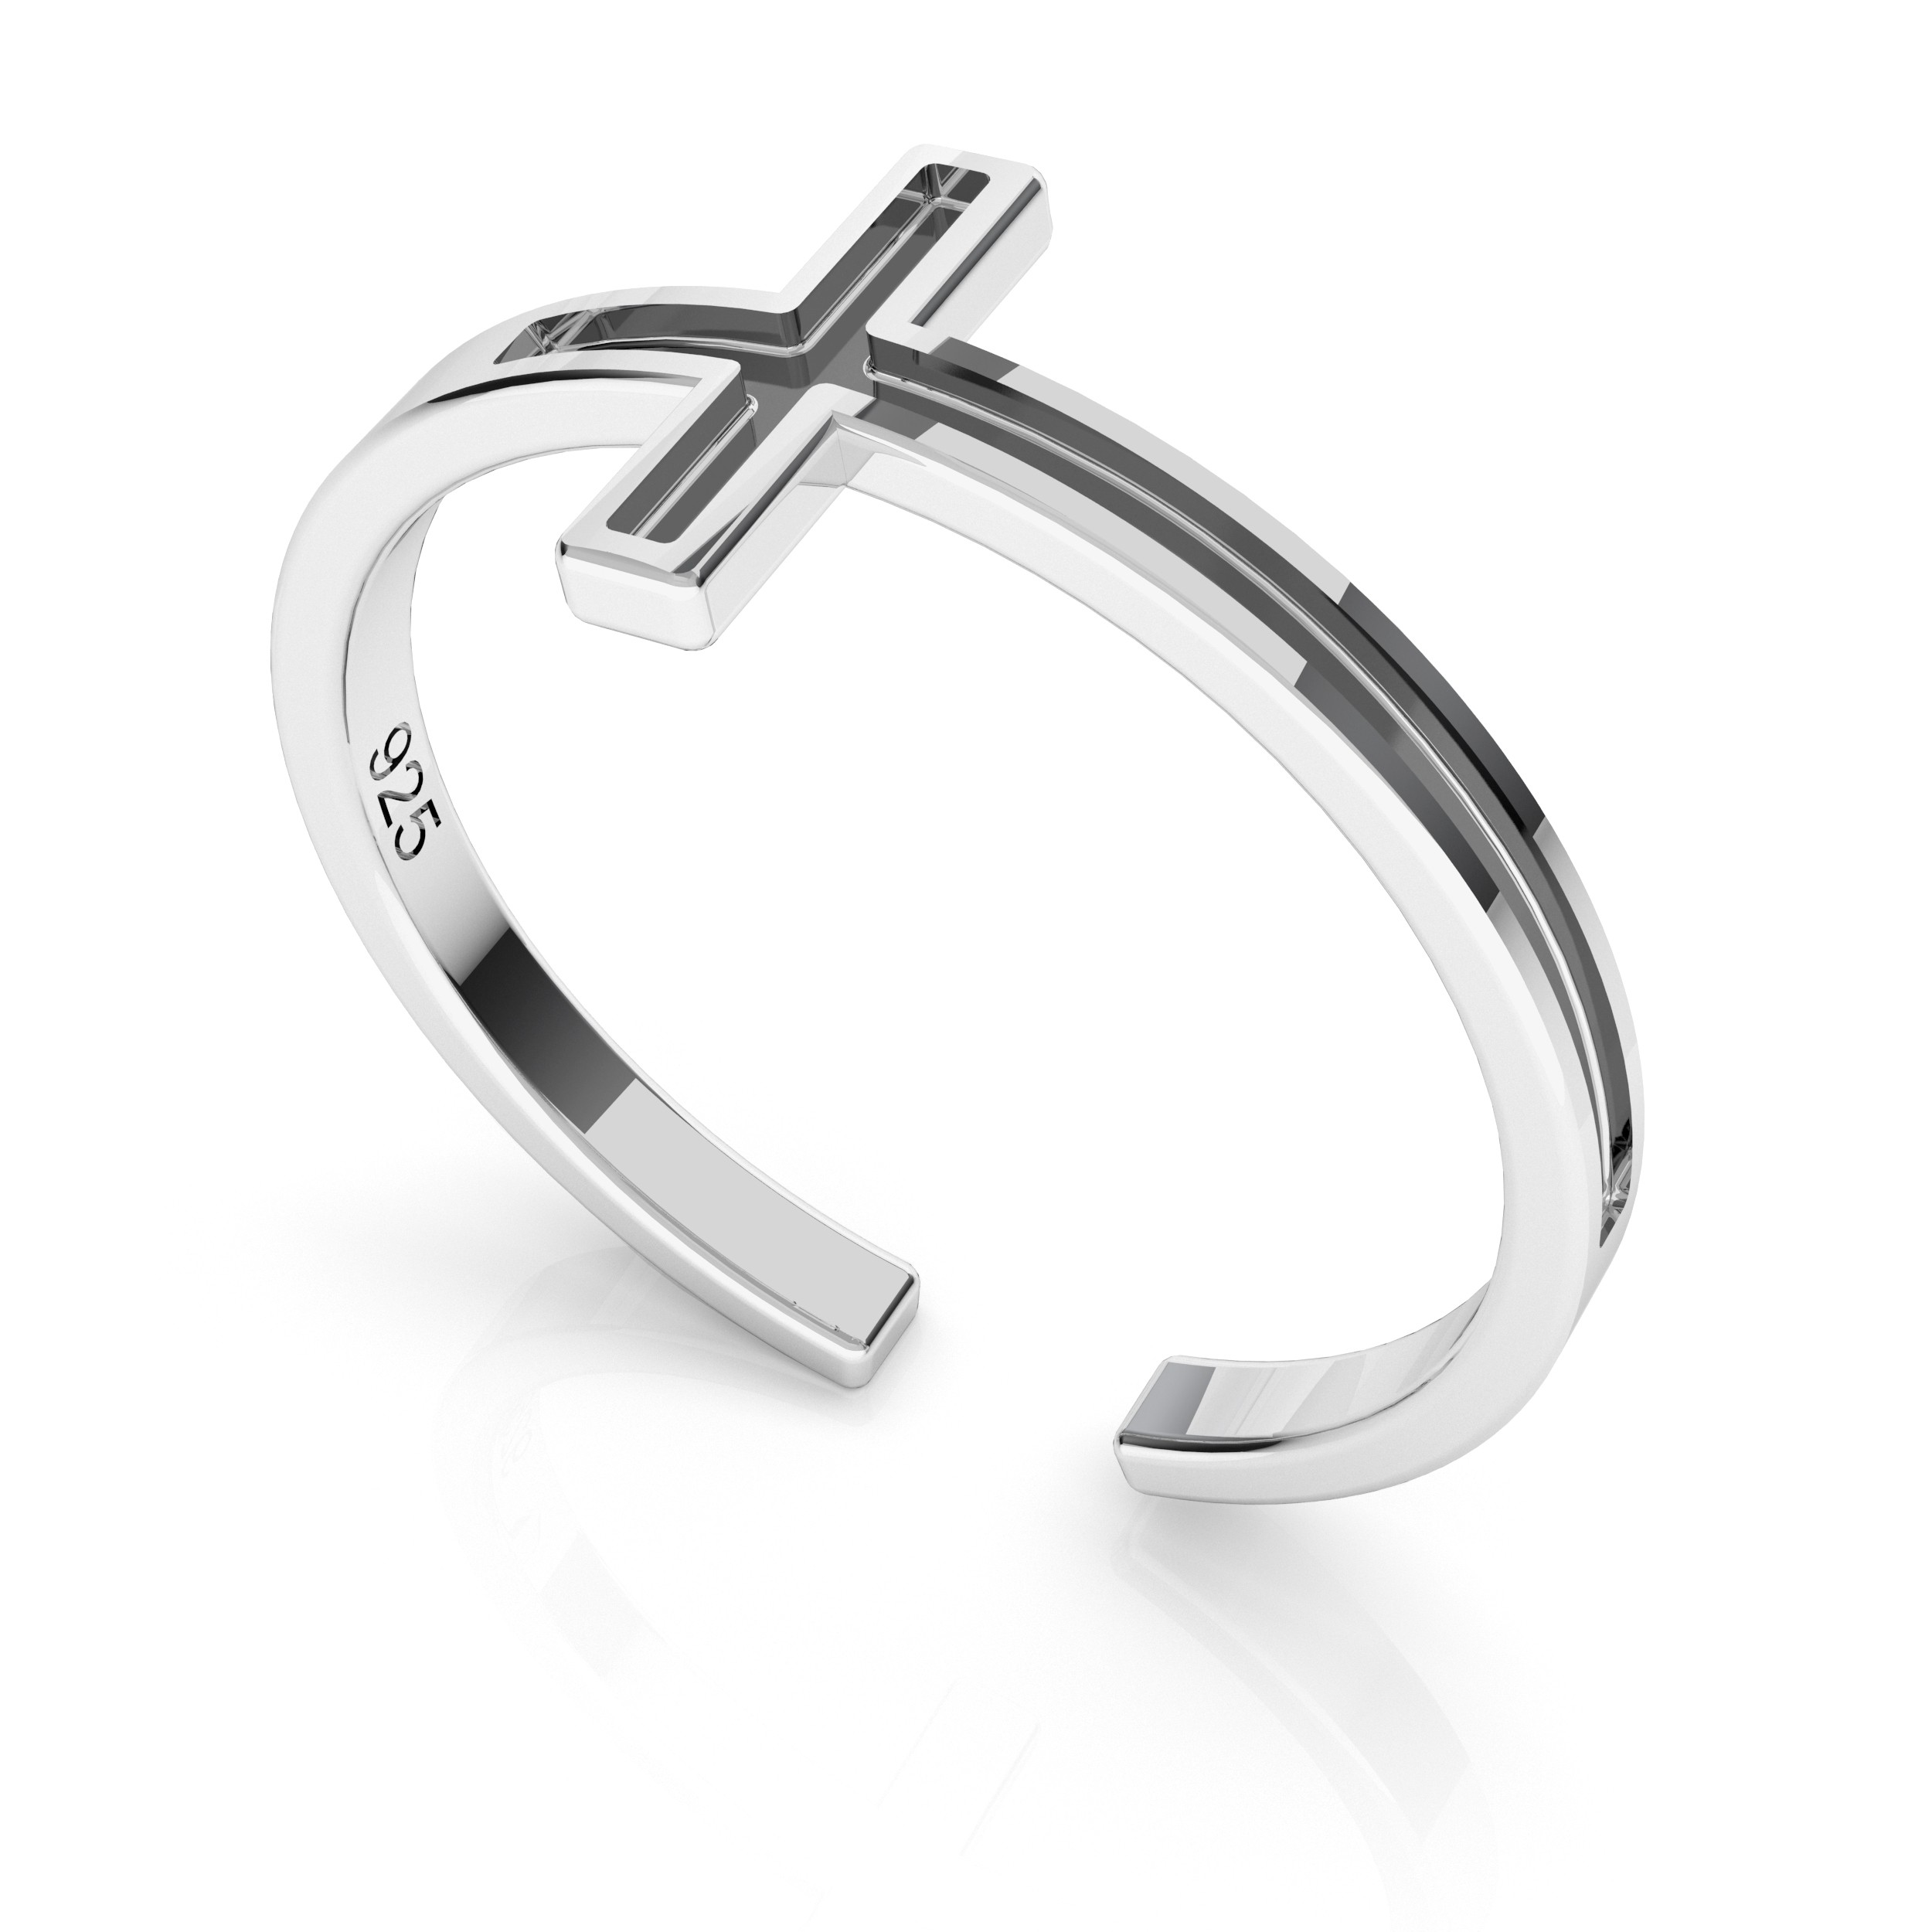 Rope ring, sterling silver 925